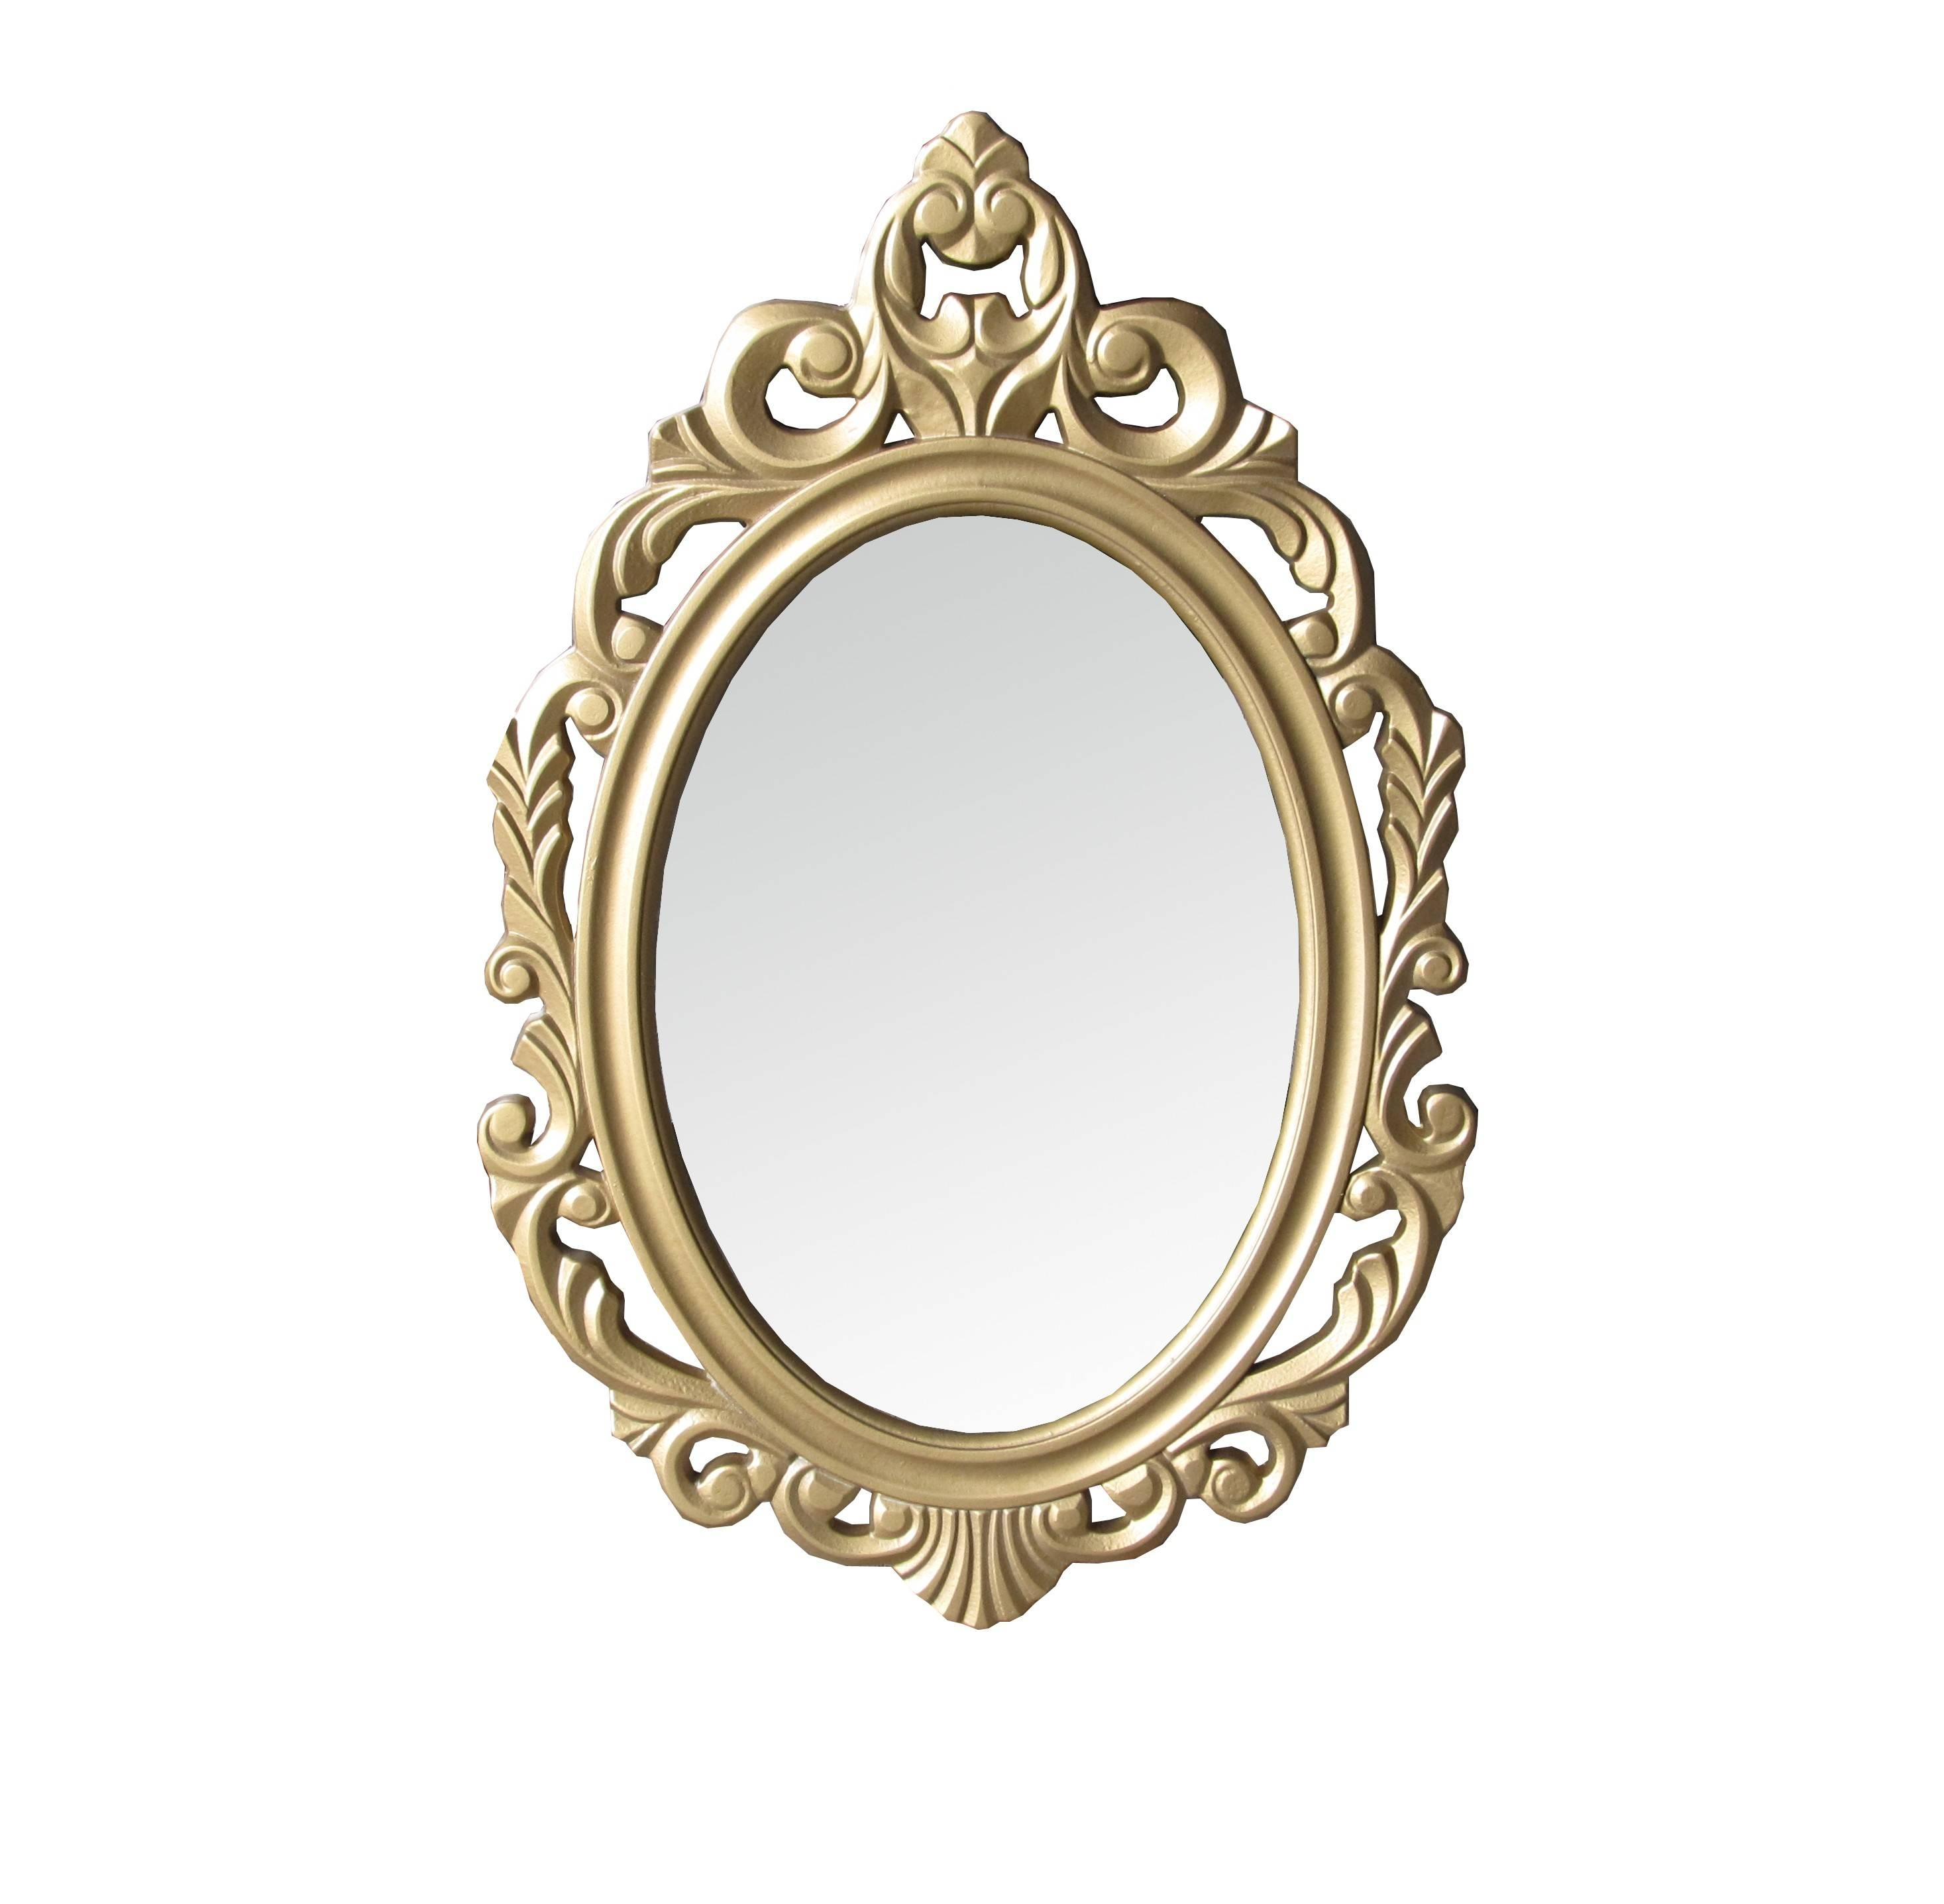 Interior & Decoration: Shabby Chic Ornate Gold Oval Wall Mirror pertaining to Ornate Oval Mirrors (Image 10 of 25)